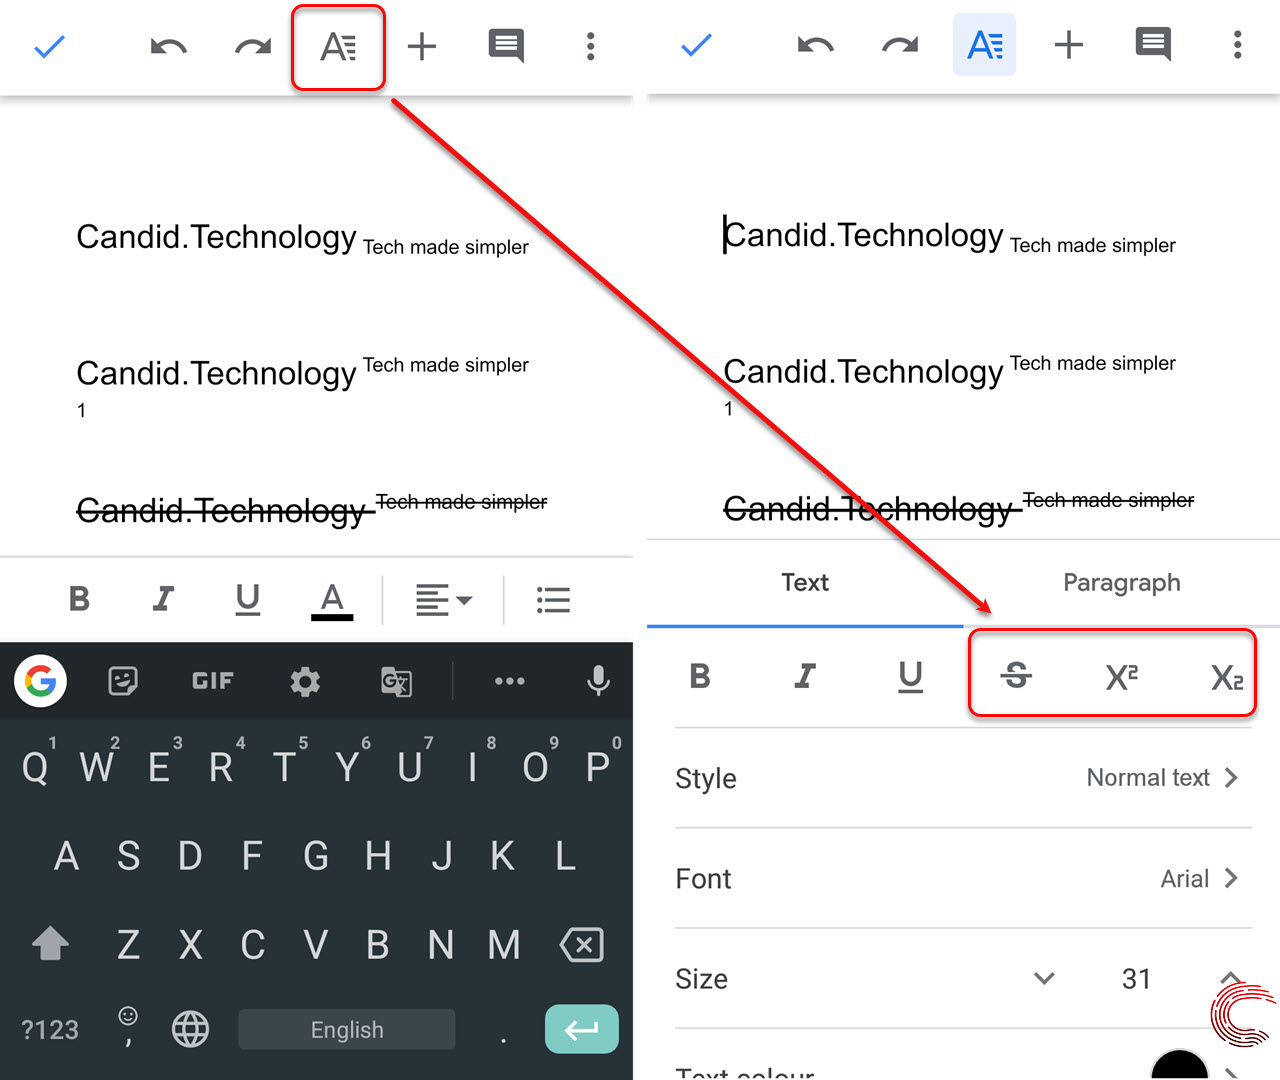 How to Superscript, Subscript and Strikethrough in Google Docs?